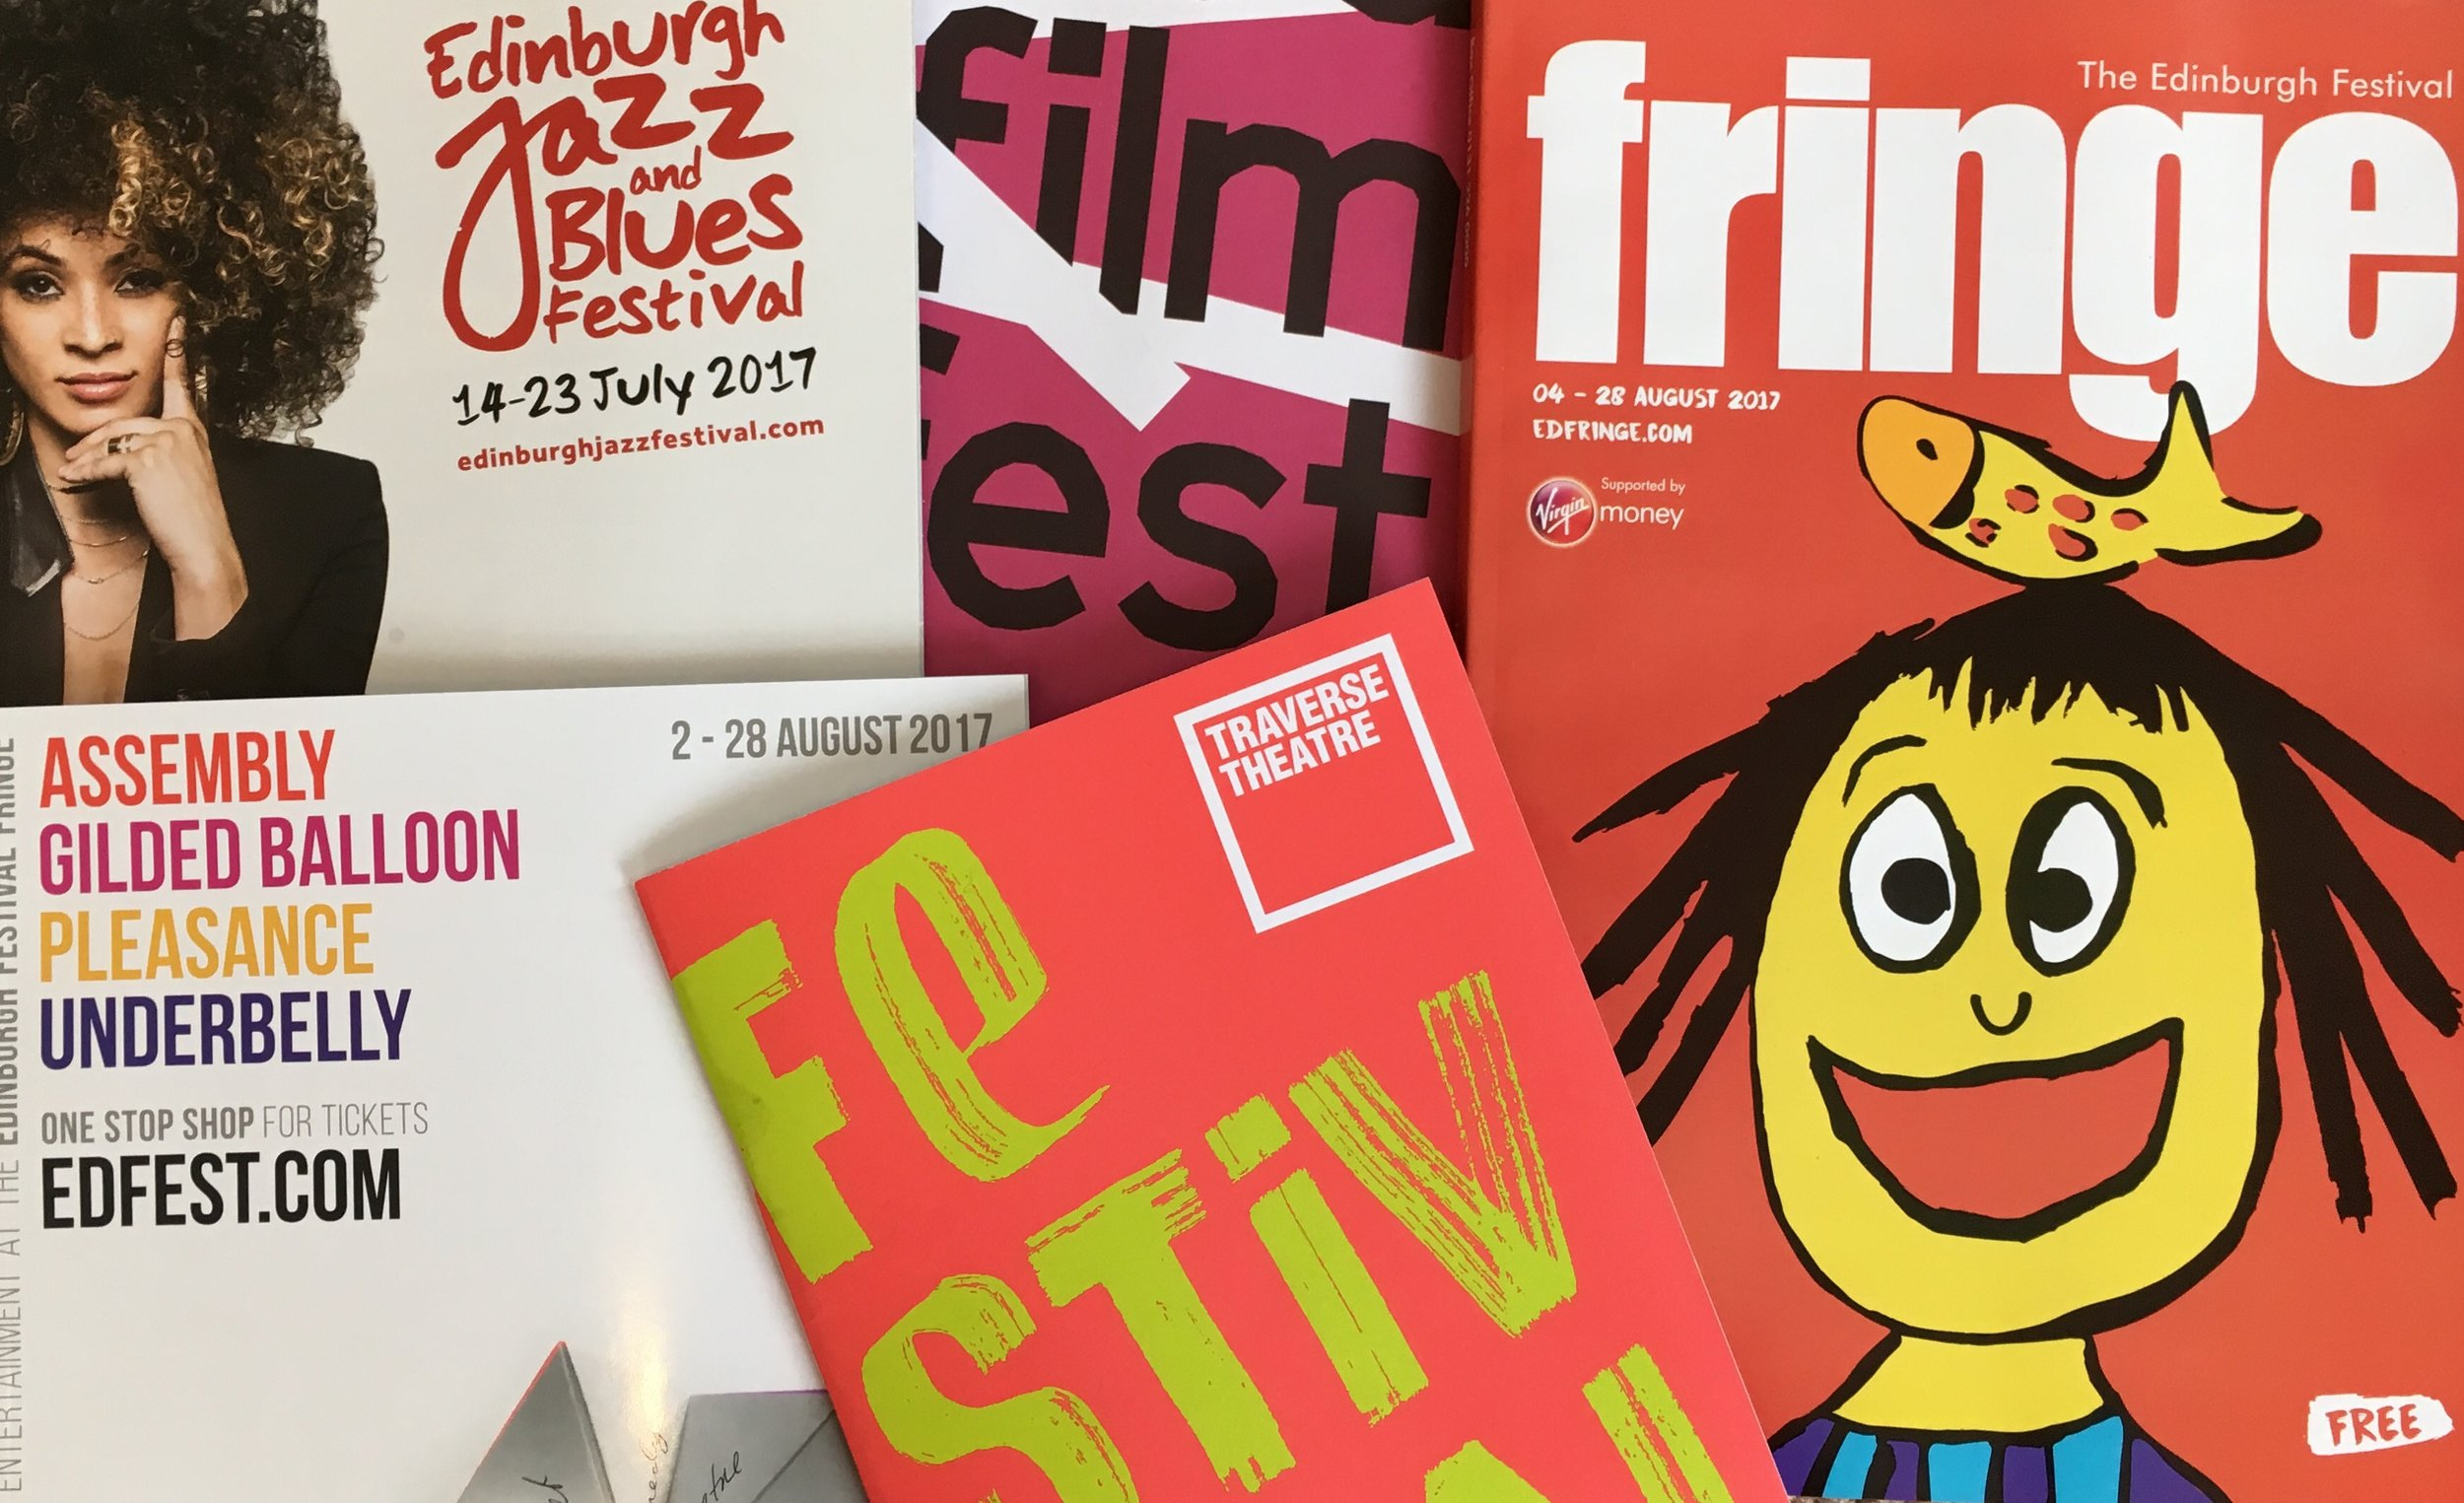 Edinburgh festival brochures